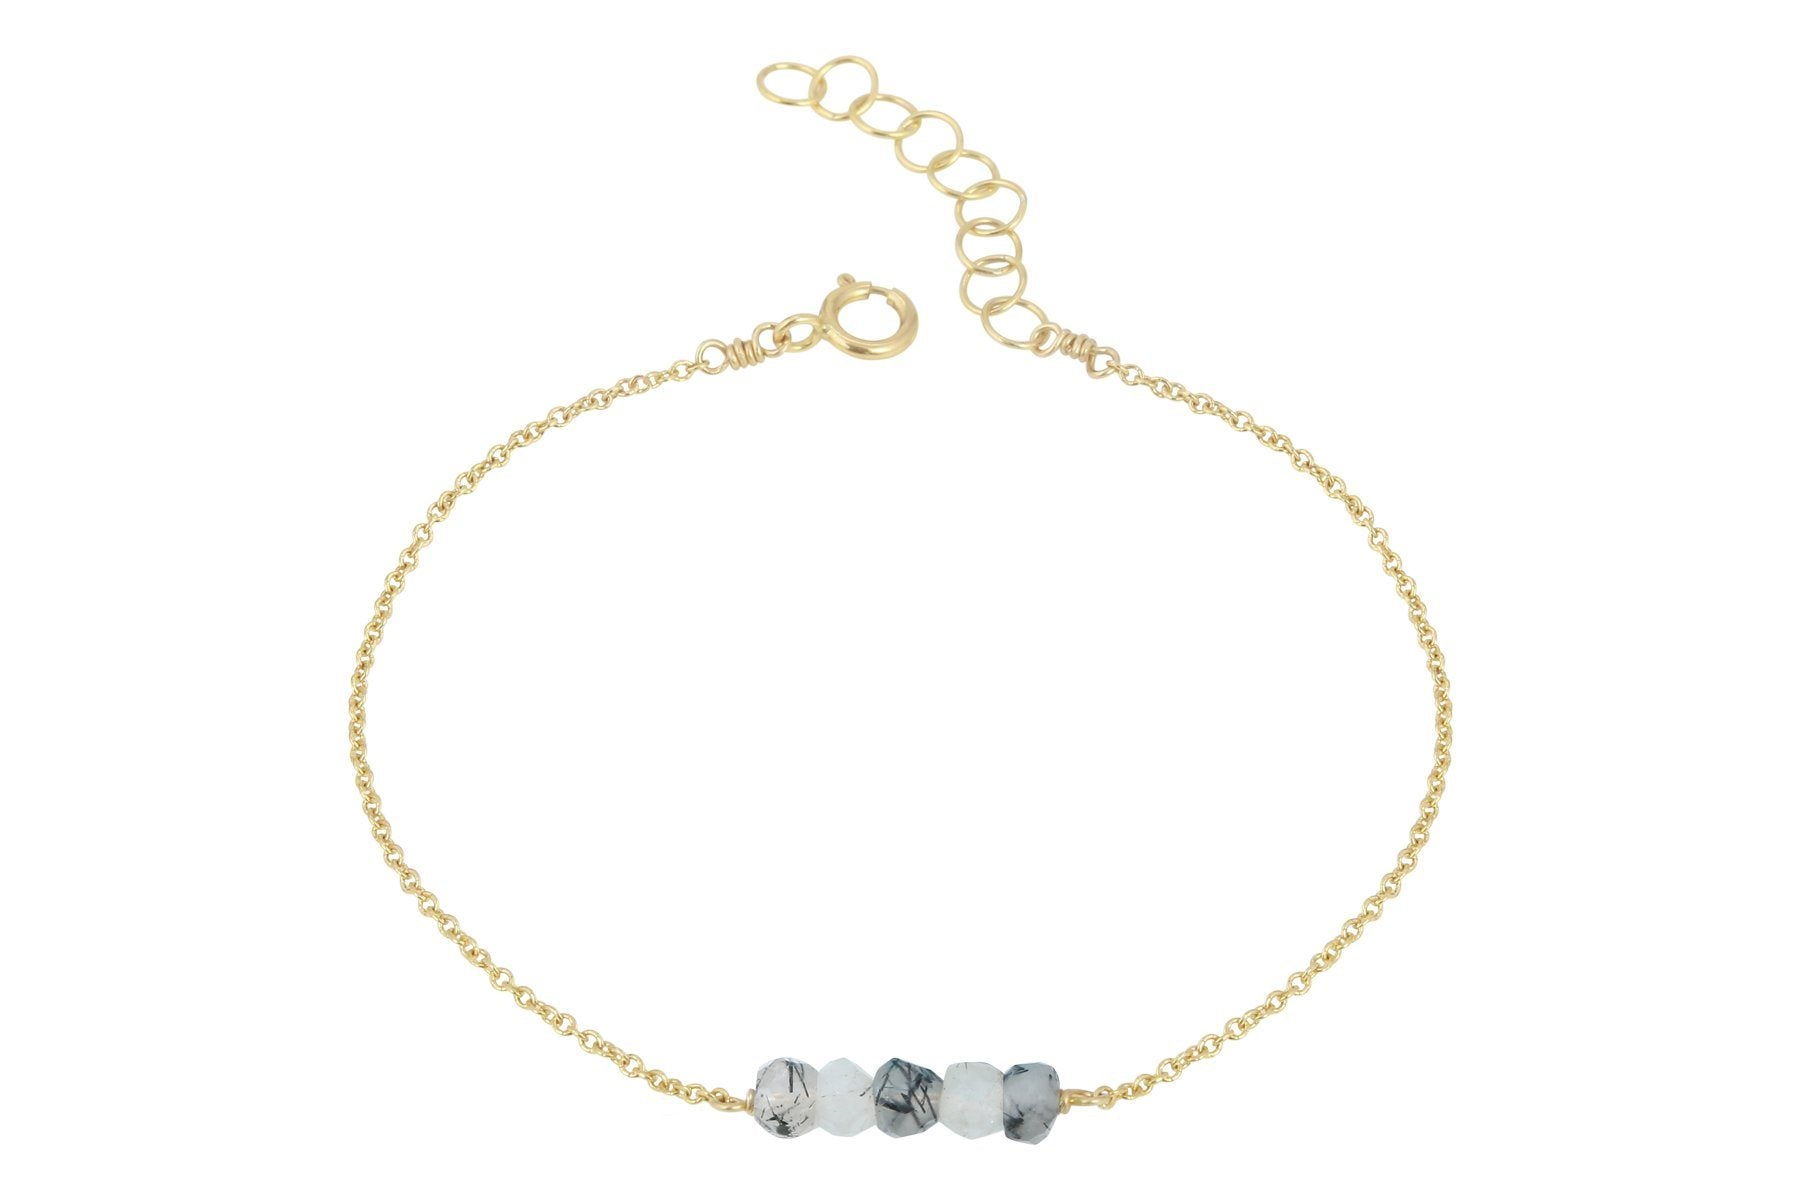 Elements- Tourmalinated Quartz 5 stone gold filled adjustable chain bracelet